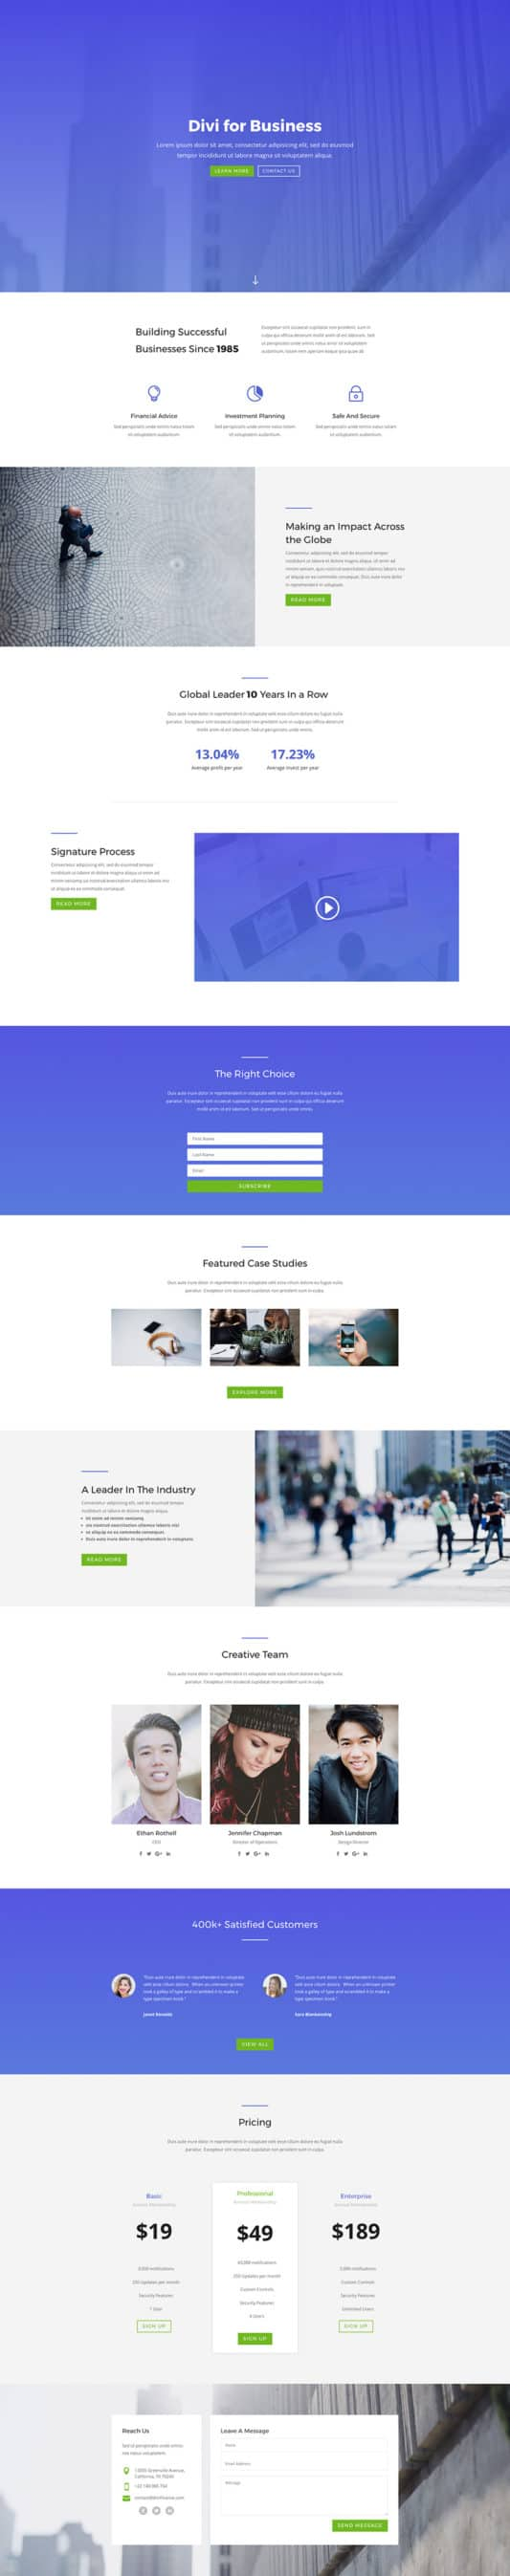 Agency Web Design 5